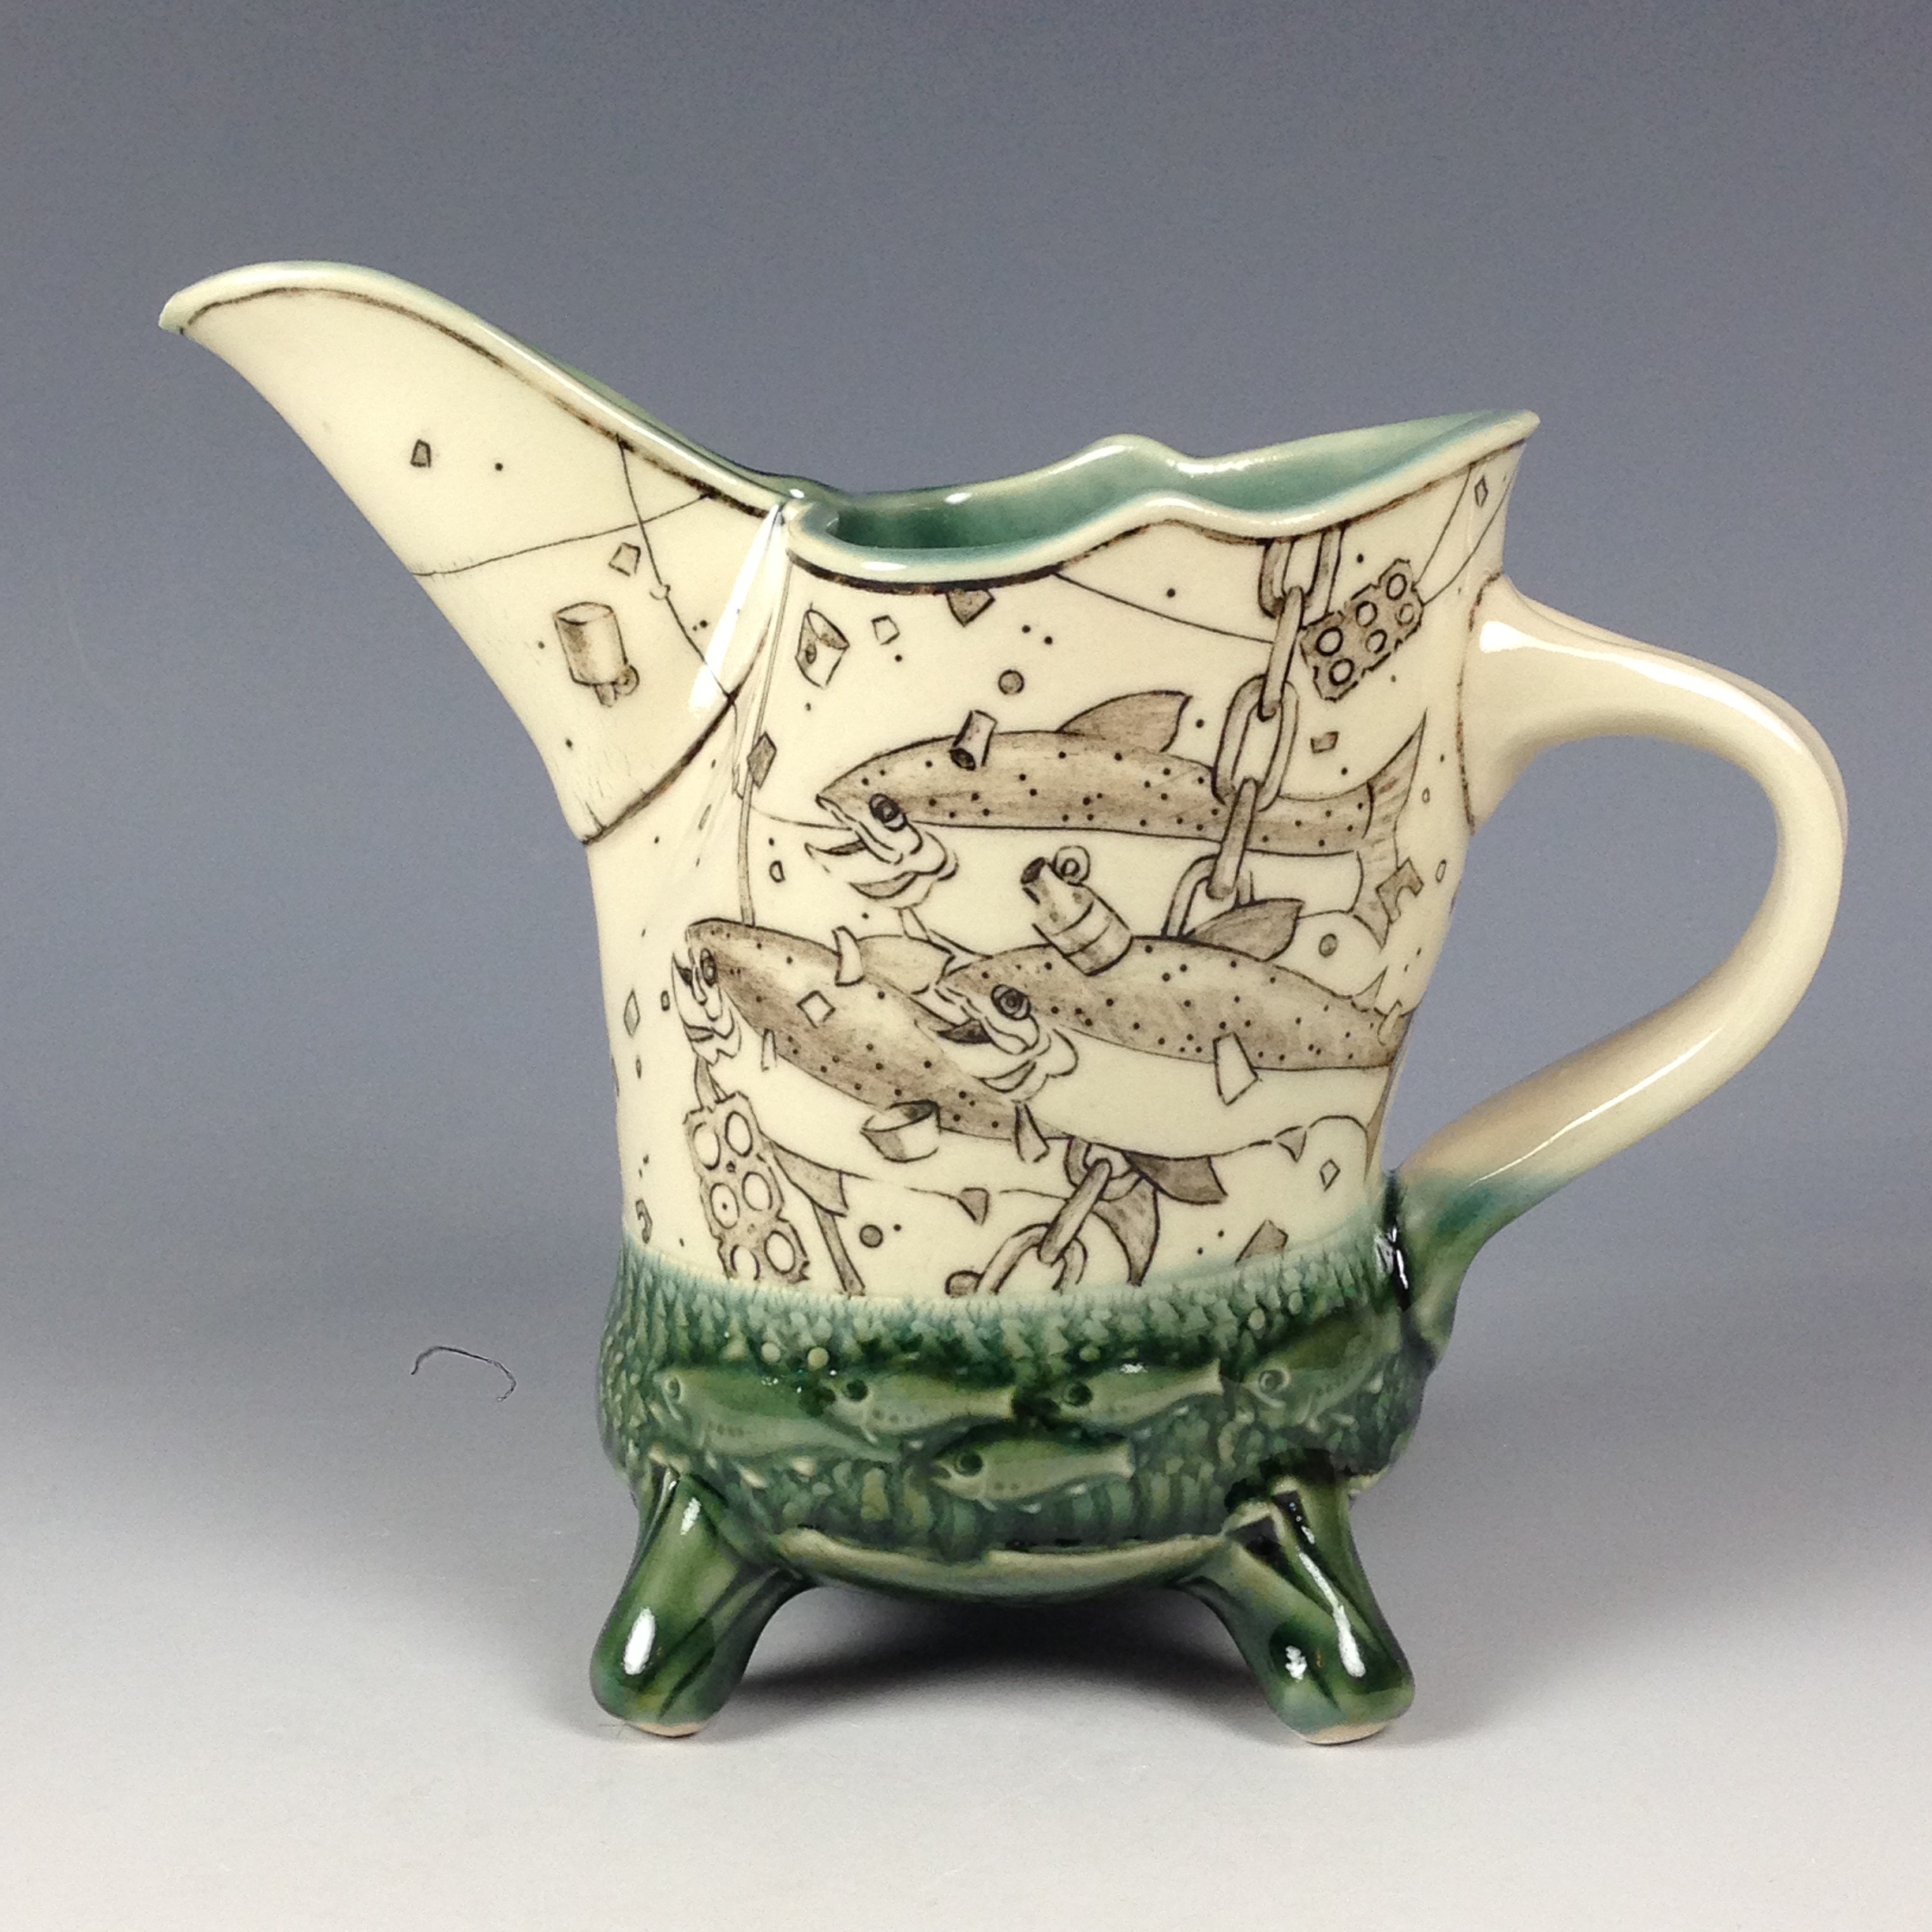 Mishima Pitcher 380 Meiners And Lee Studios The Art